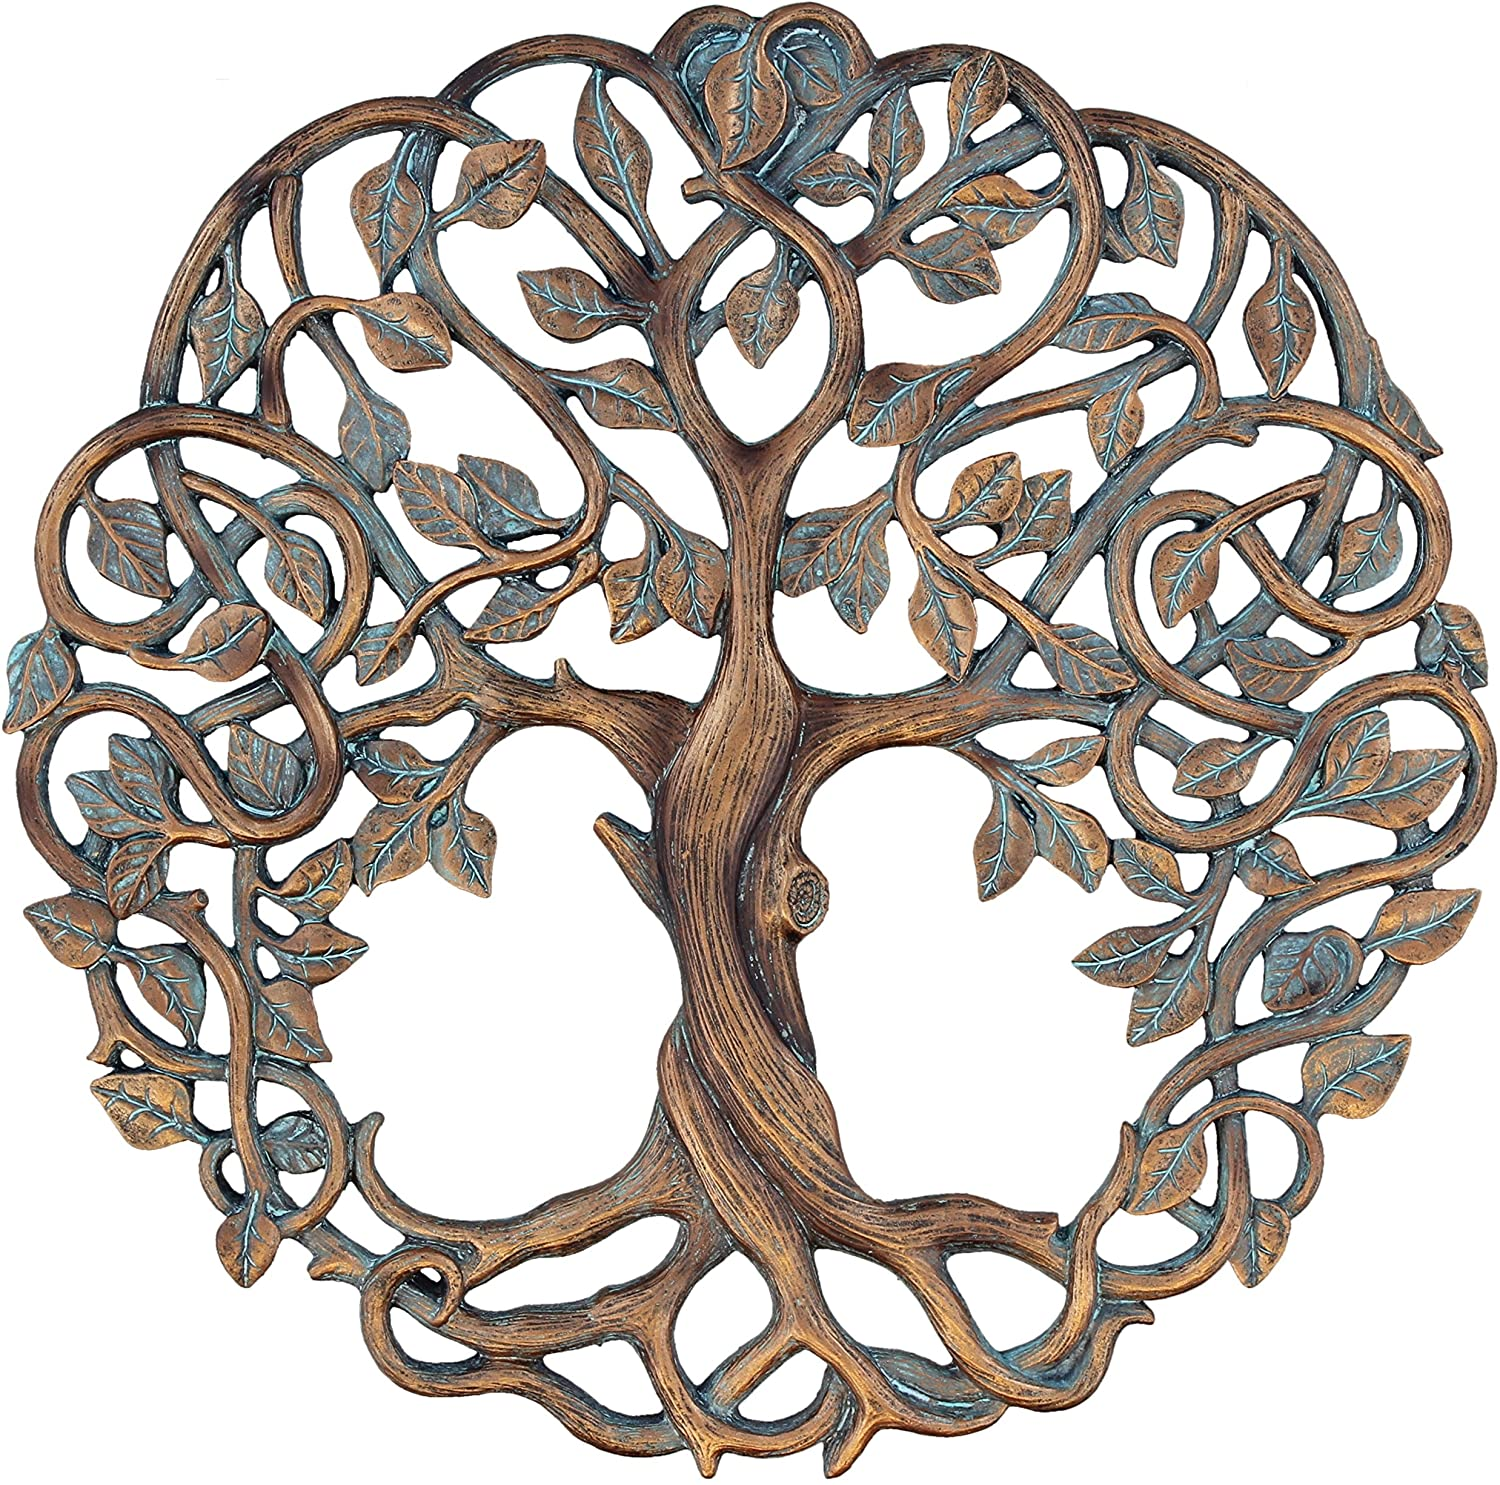 Tree of Life - an universal symbol beyond fashion trend